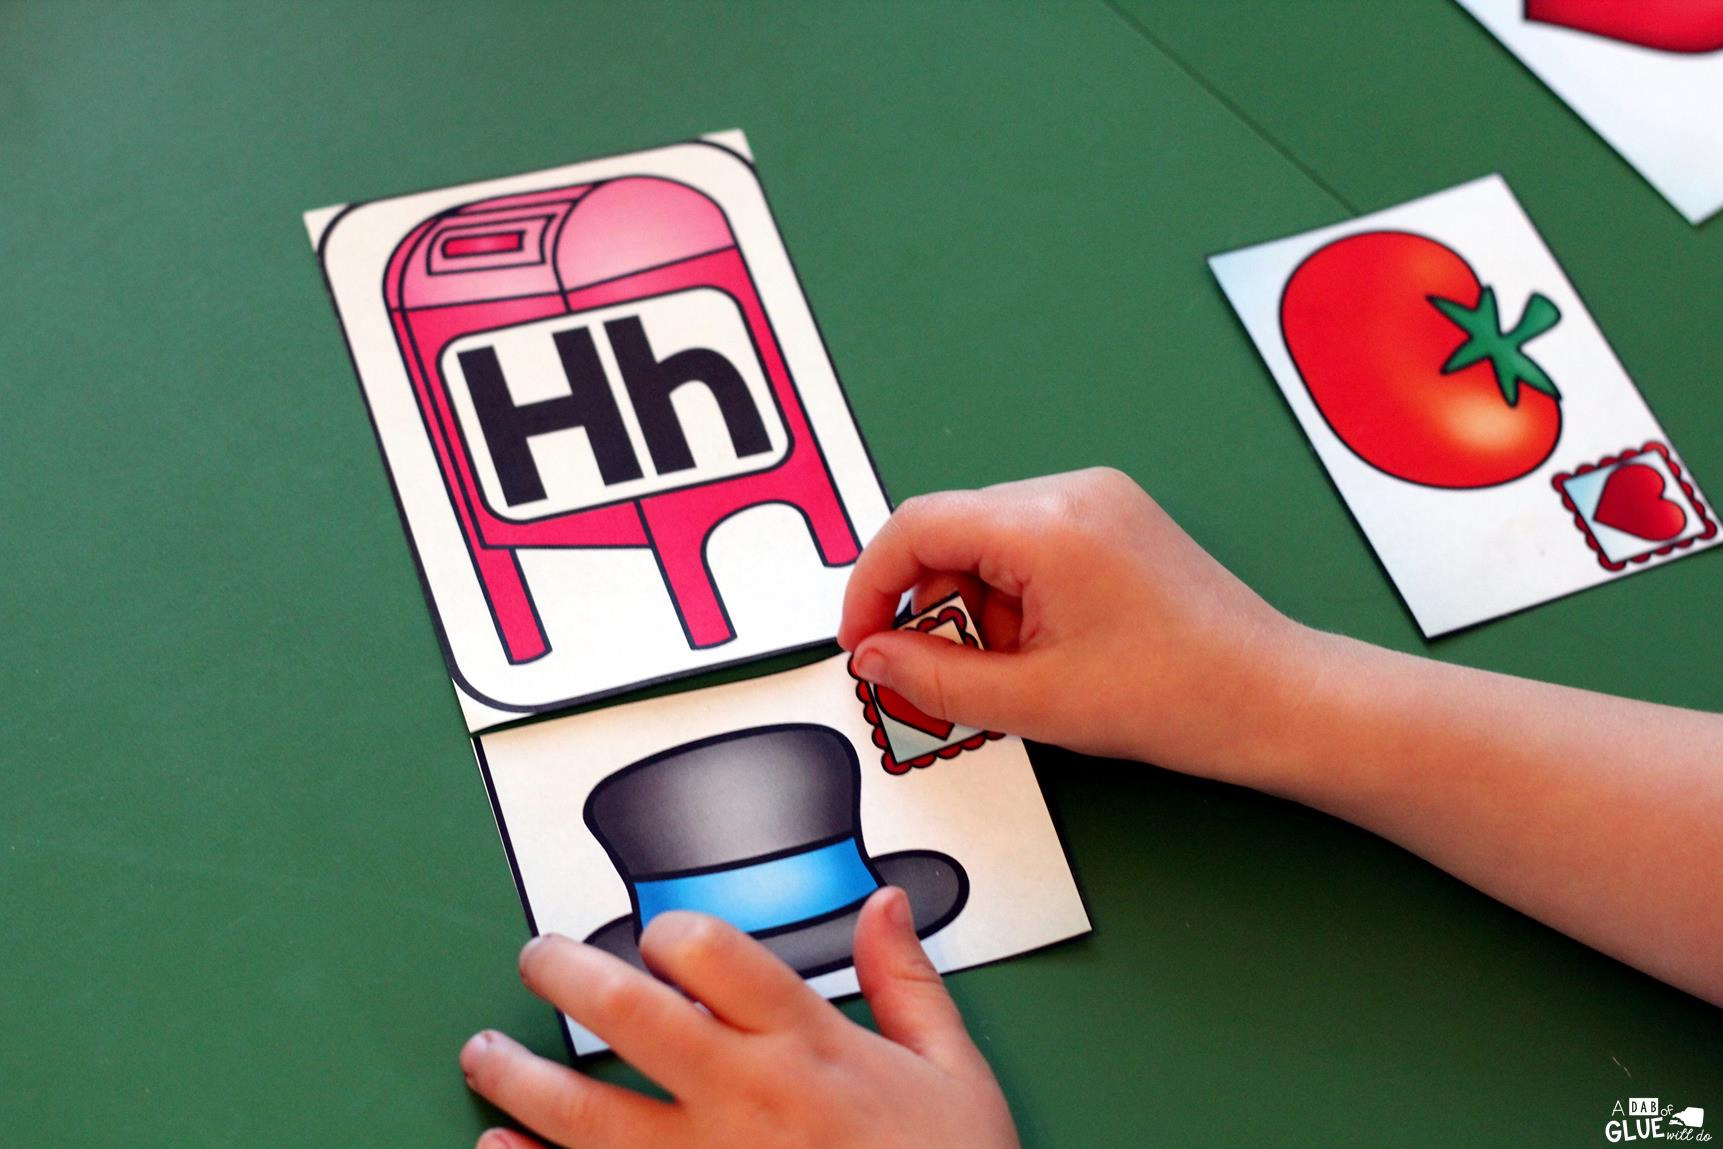 Make learning fun with these Valentine's Day Initial Sound and Number Match-Ups. Your elementary age students will love this fun Valentine's Day themed literacy center and math center! Perfect for literacy stations, math stations, or small review groups. Use in your Preschool, Kindergarten, and First Grade classrooms. Black and white options available to save your color ink.